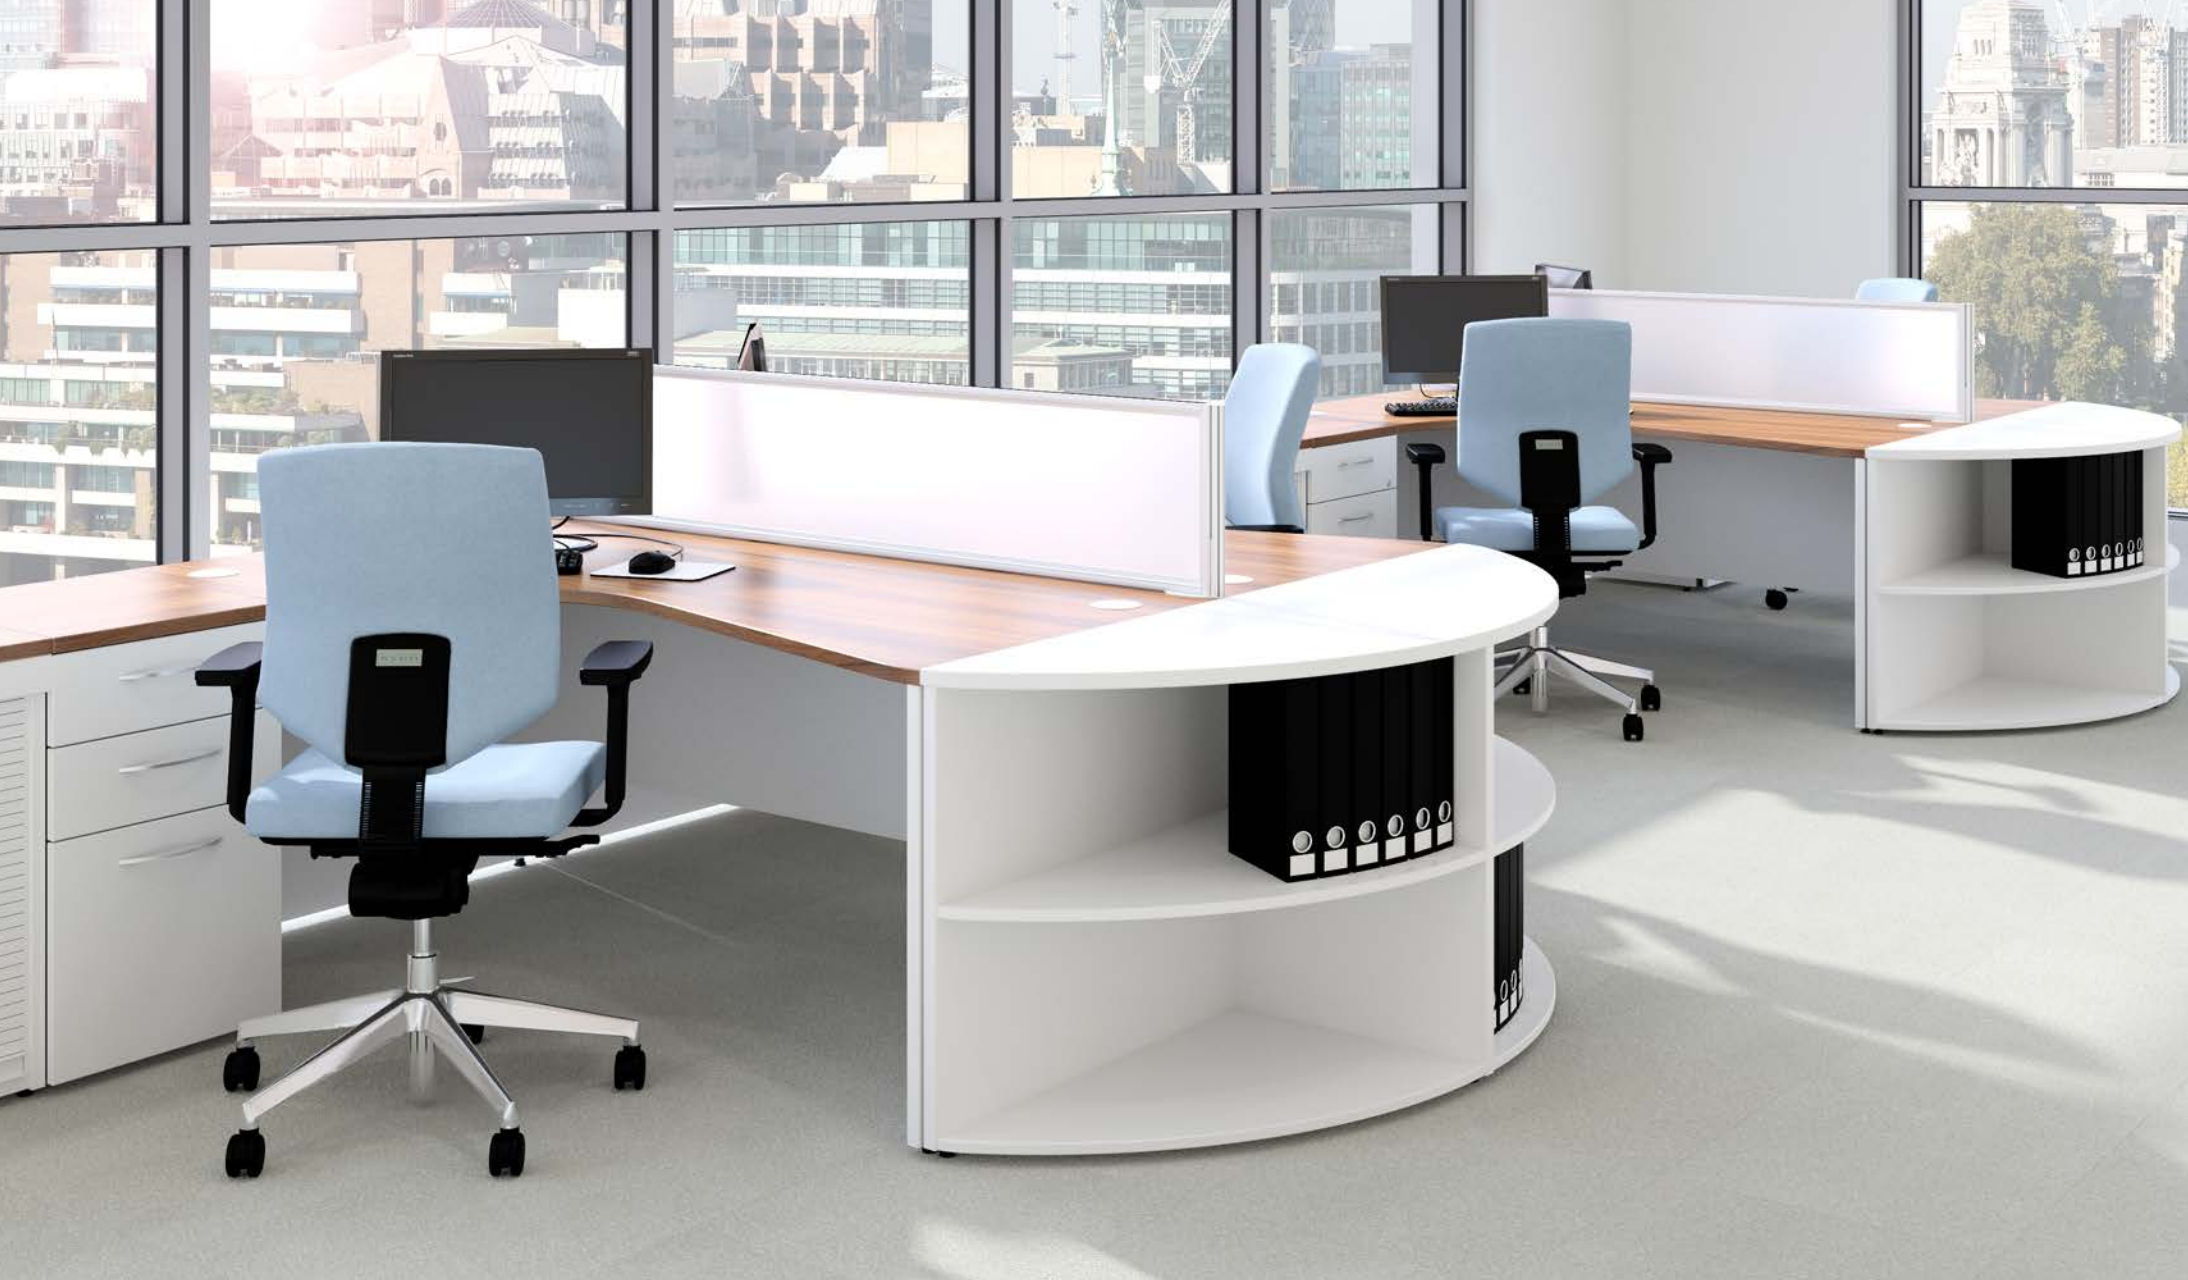 Factors To Be Consider When Choose Furniture For Office Spaces